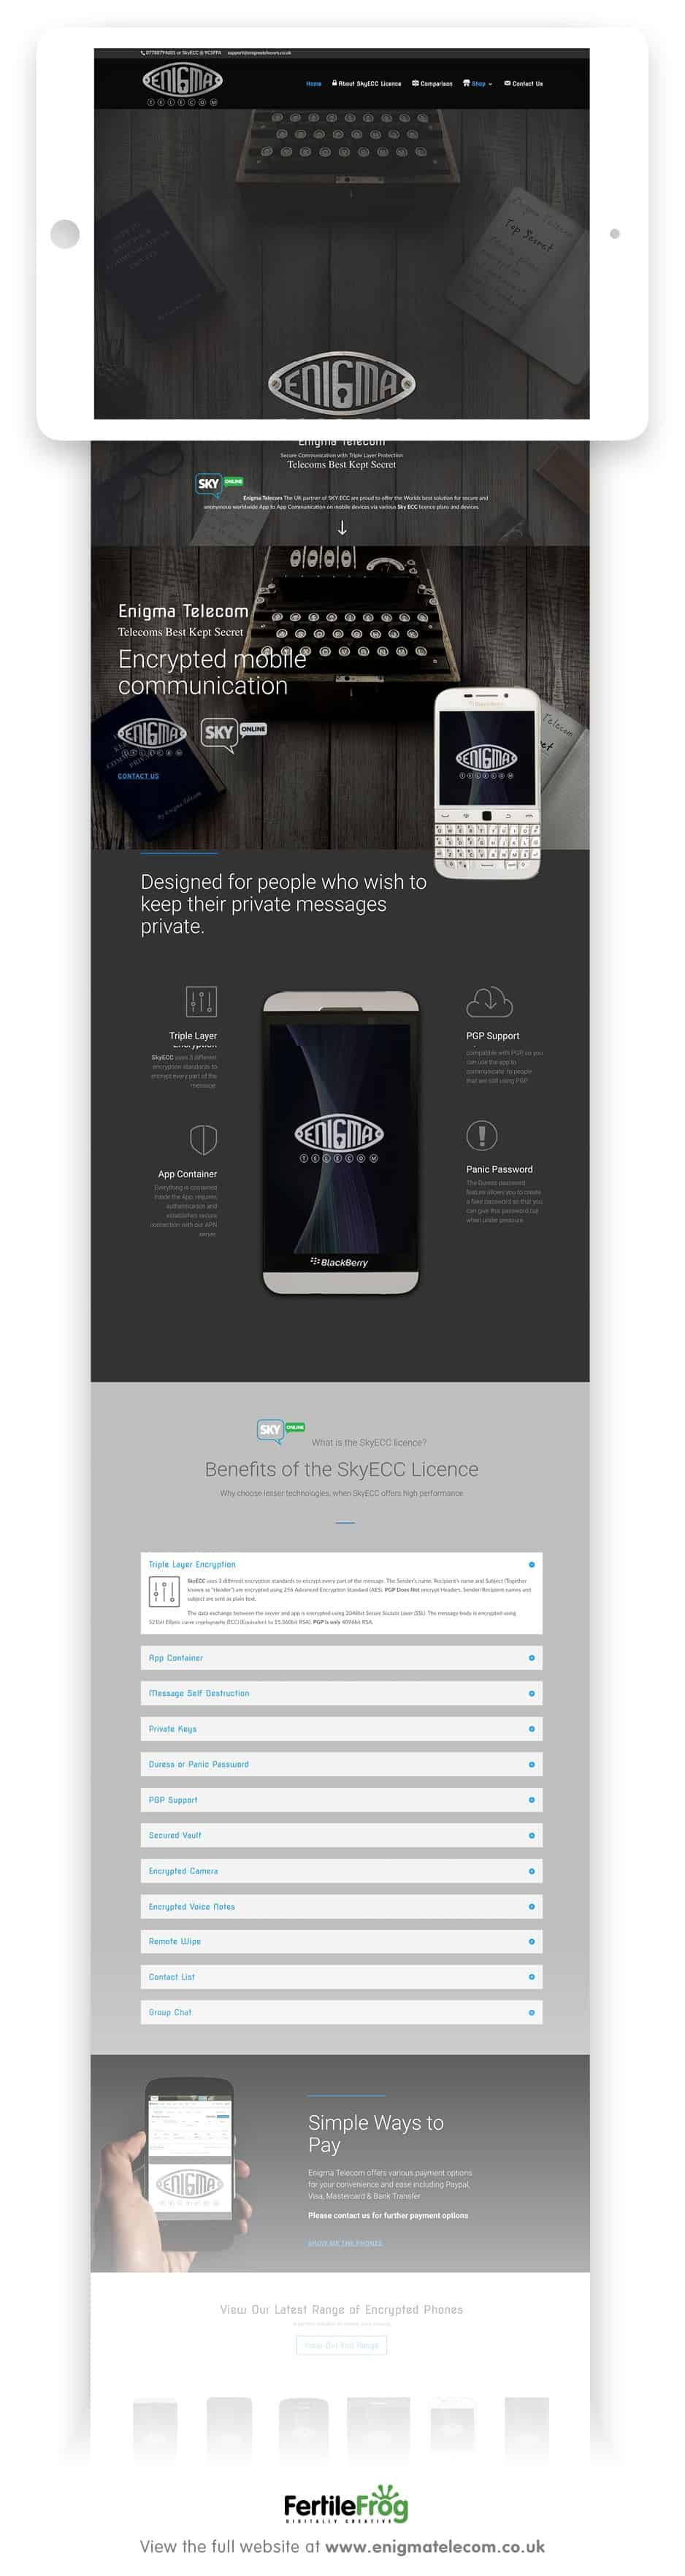 Enigma telecom website home page designed by fertile frog